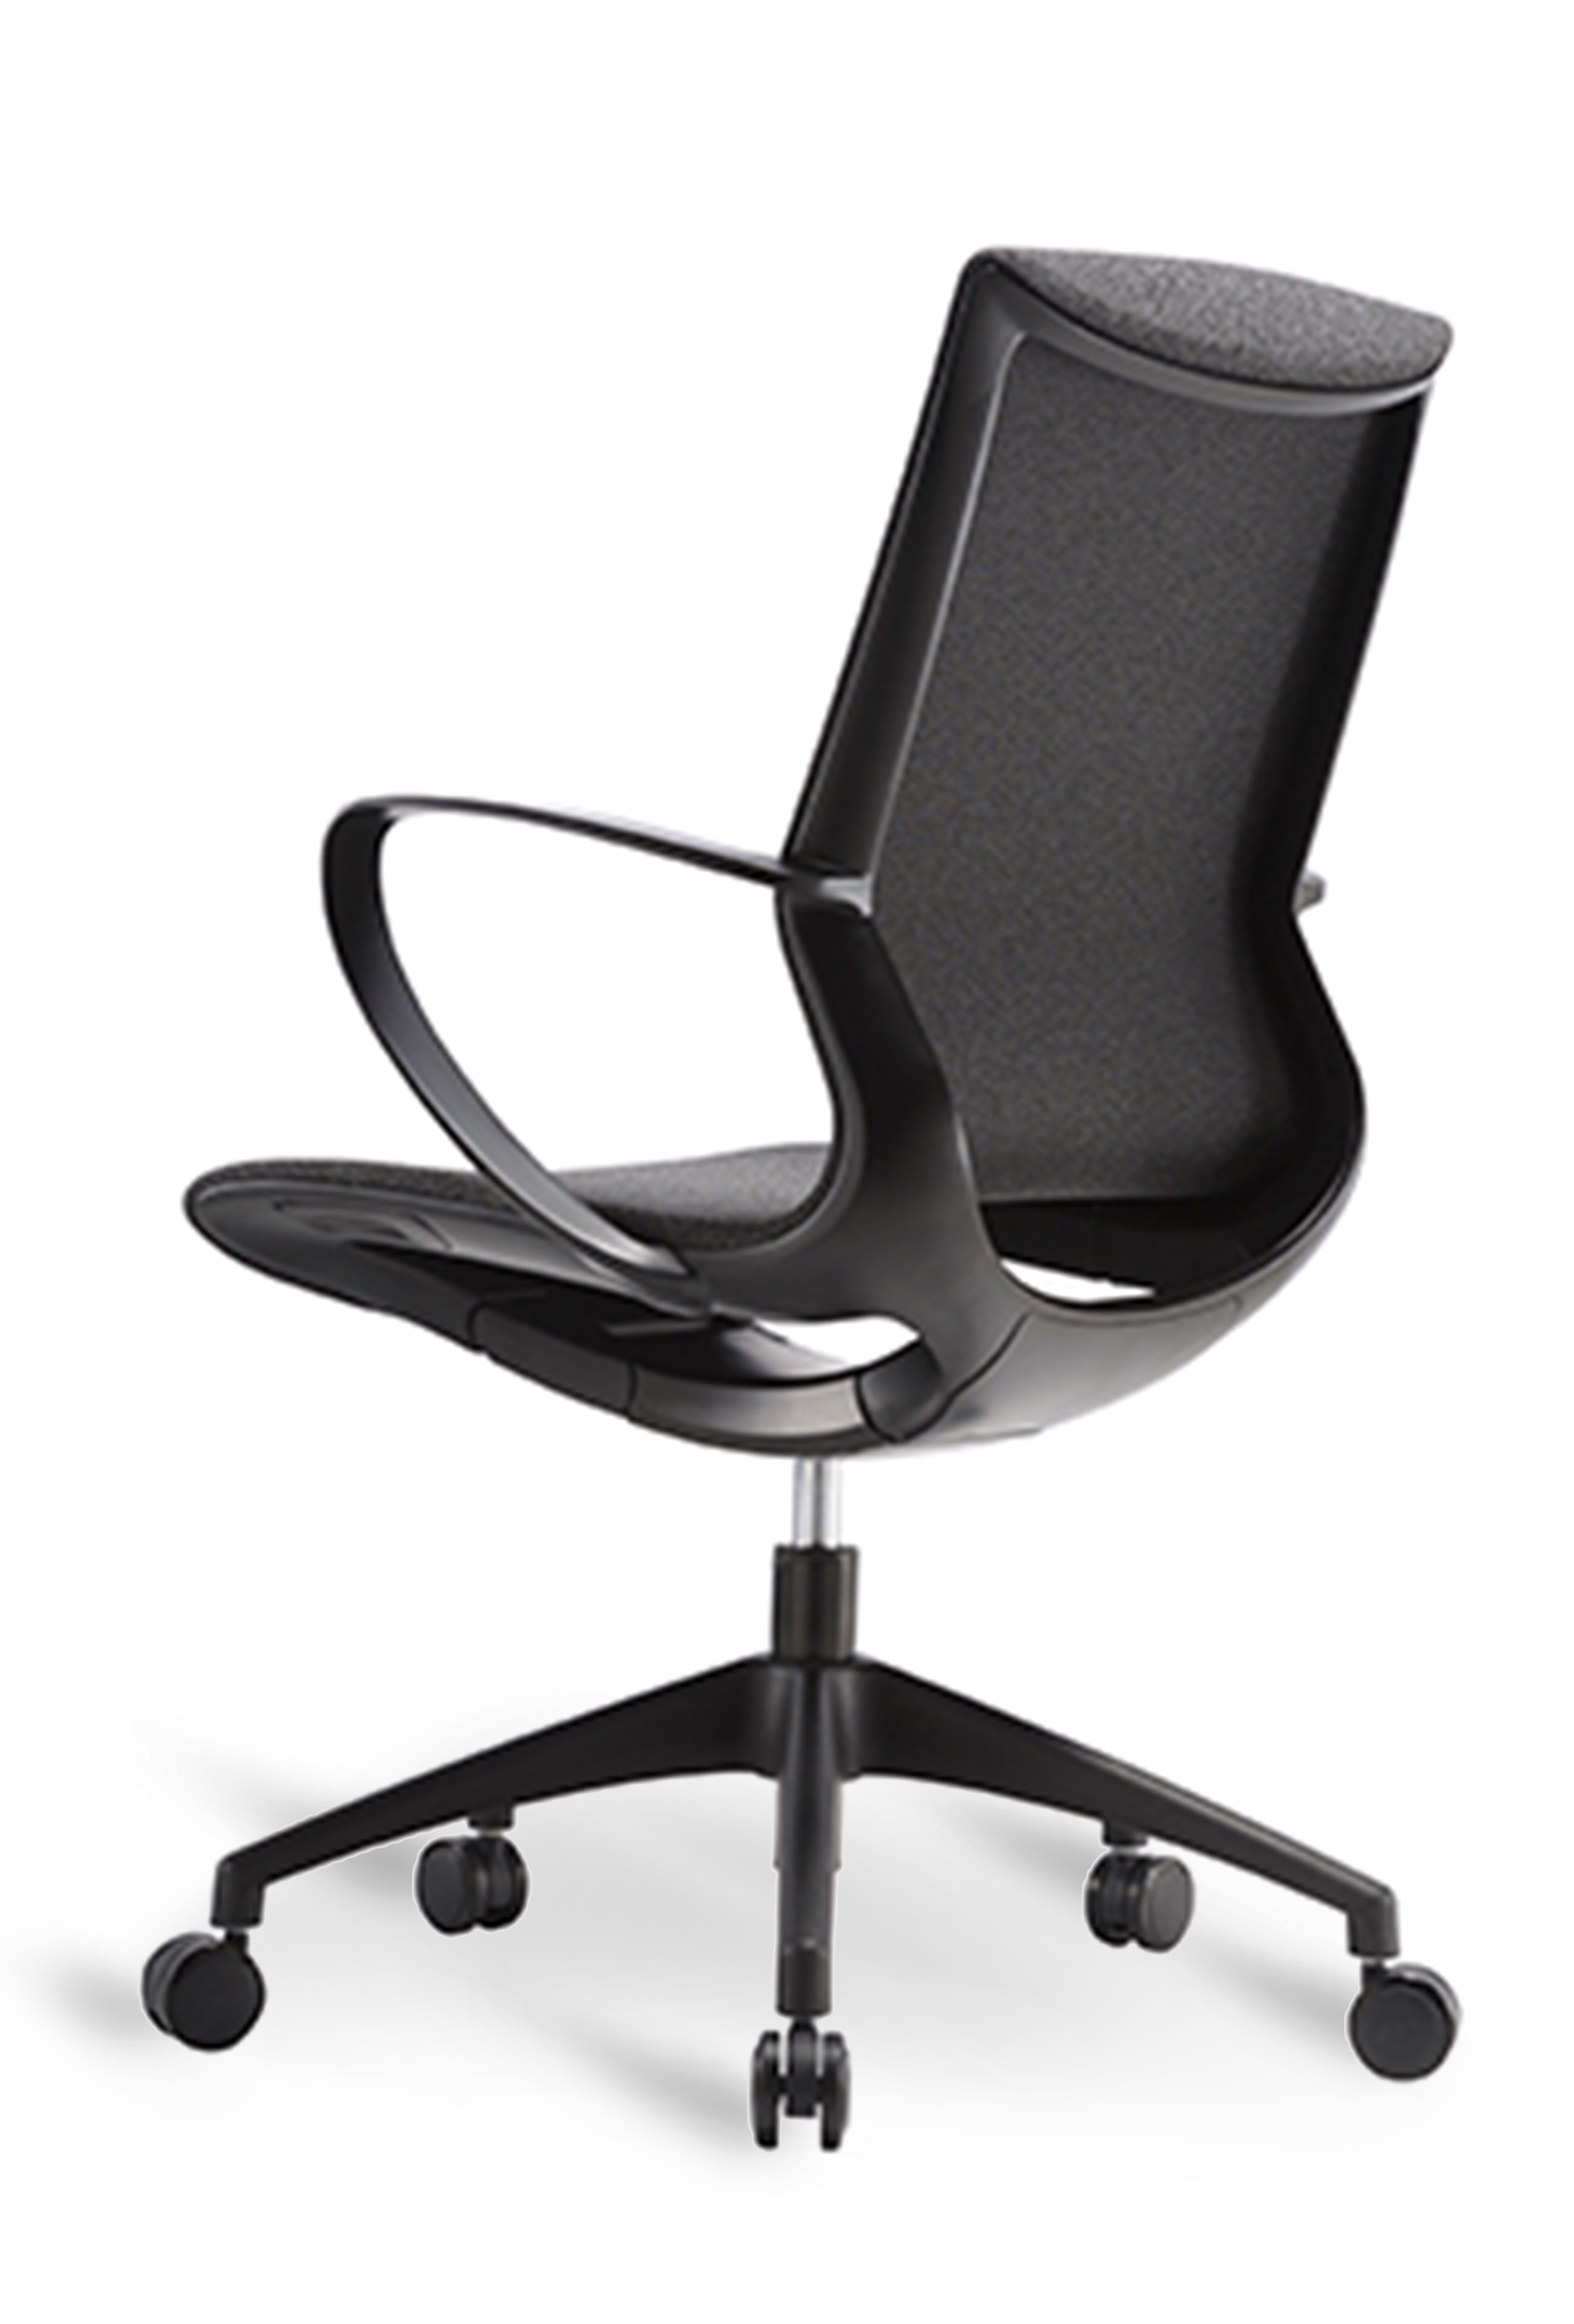 WS - L19 multipurpose chair - Dark grey (Back angle)